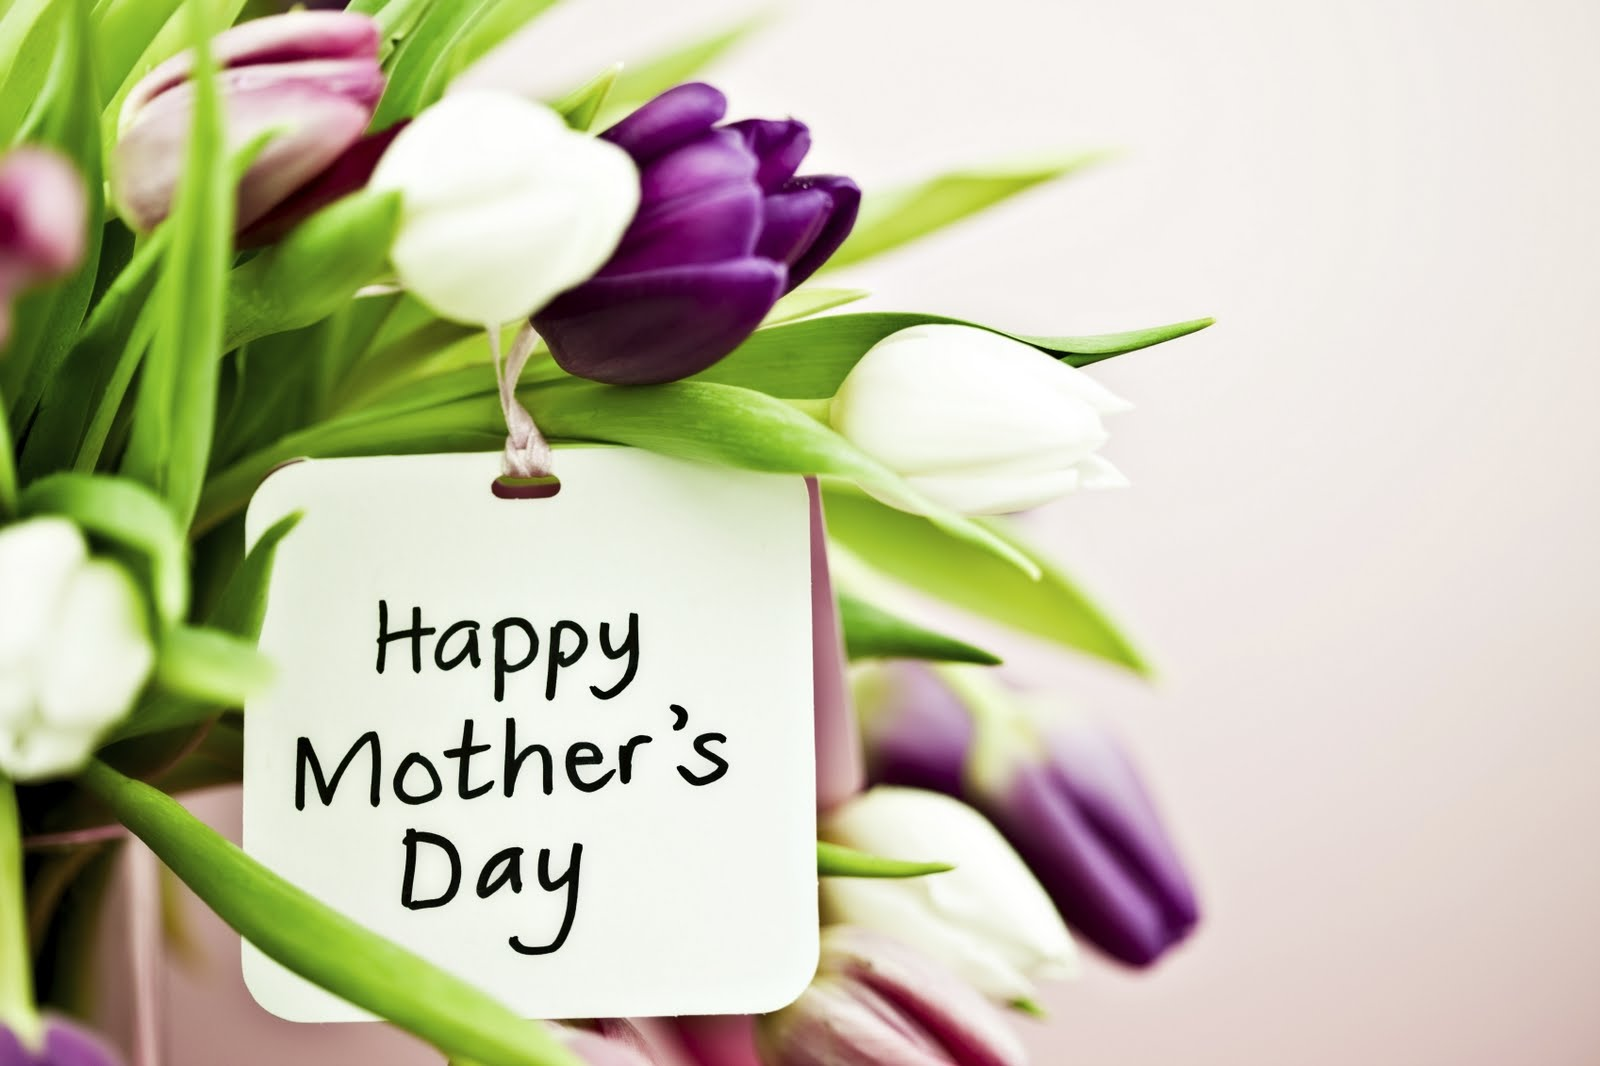 Mothers Day Hd Wallpapers 3d Card For Free Happy New Year 2014